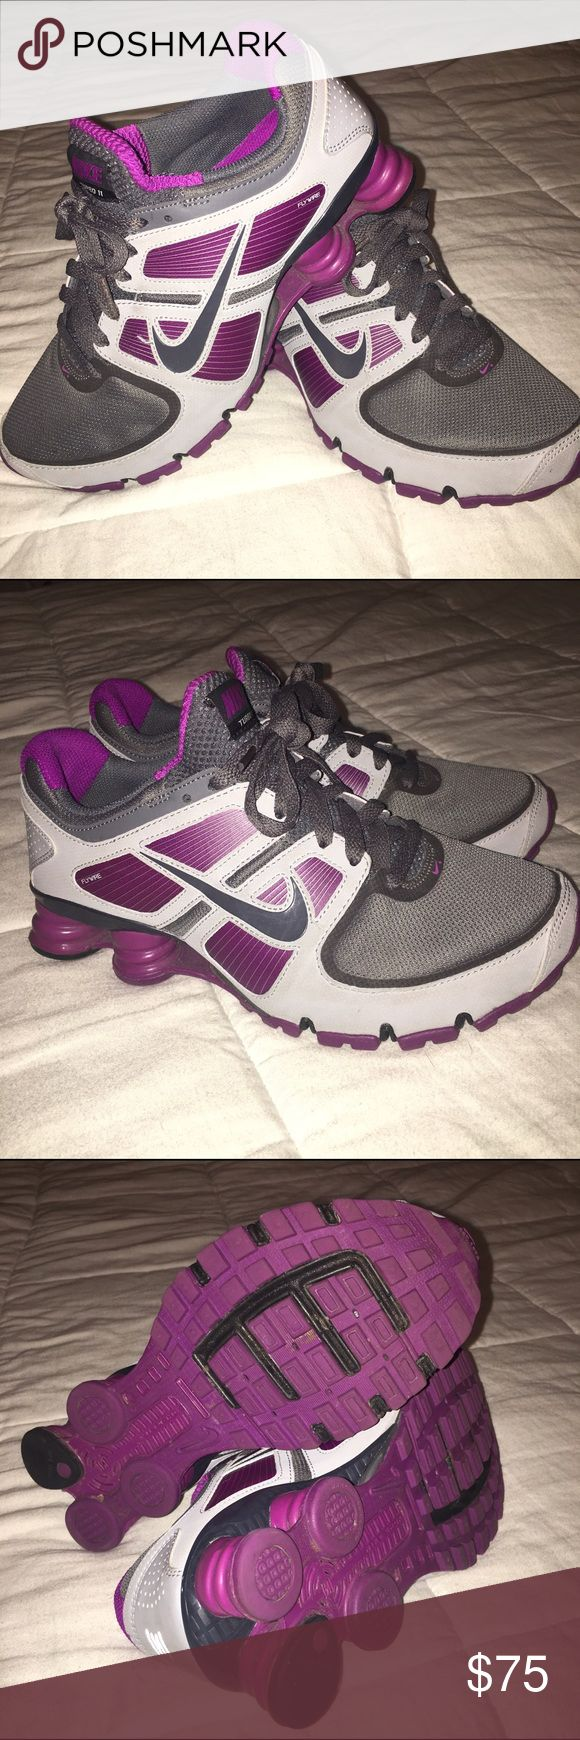 New Nike shocks - purple/gray - size 7 New Nike shocks, worn once. They were a gift and I'm honestly not a huge fan of purple. They are awesome shoes with the Nike+ capabilities •No Trades•  •Offers Welcomed•  •No Lowballing• Nike Shoes Athletic Shoes